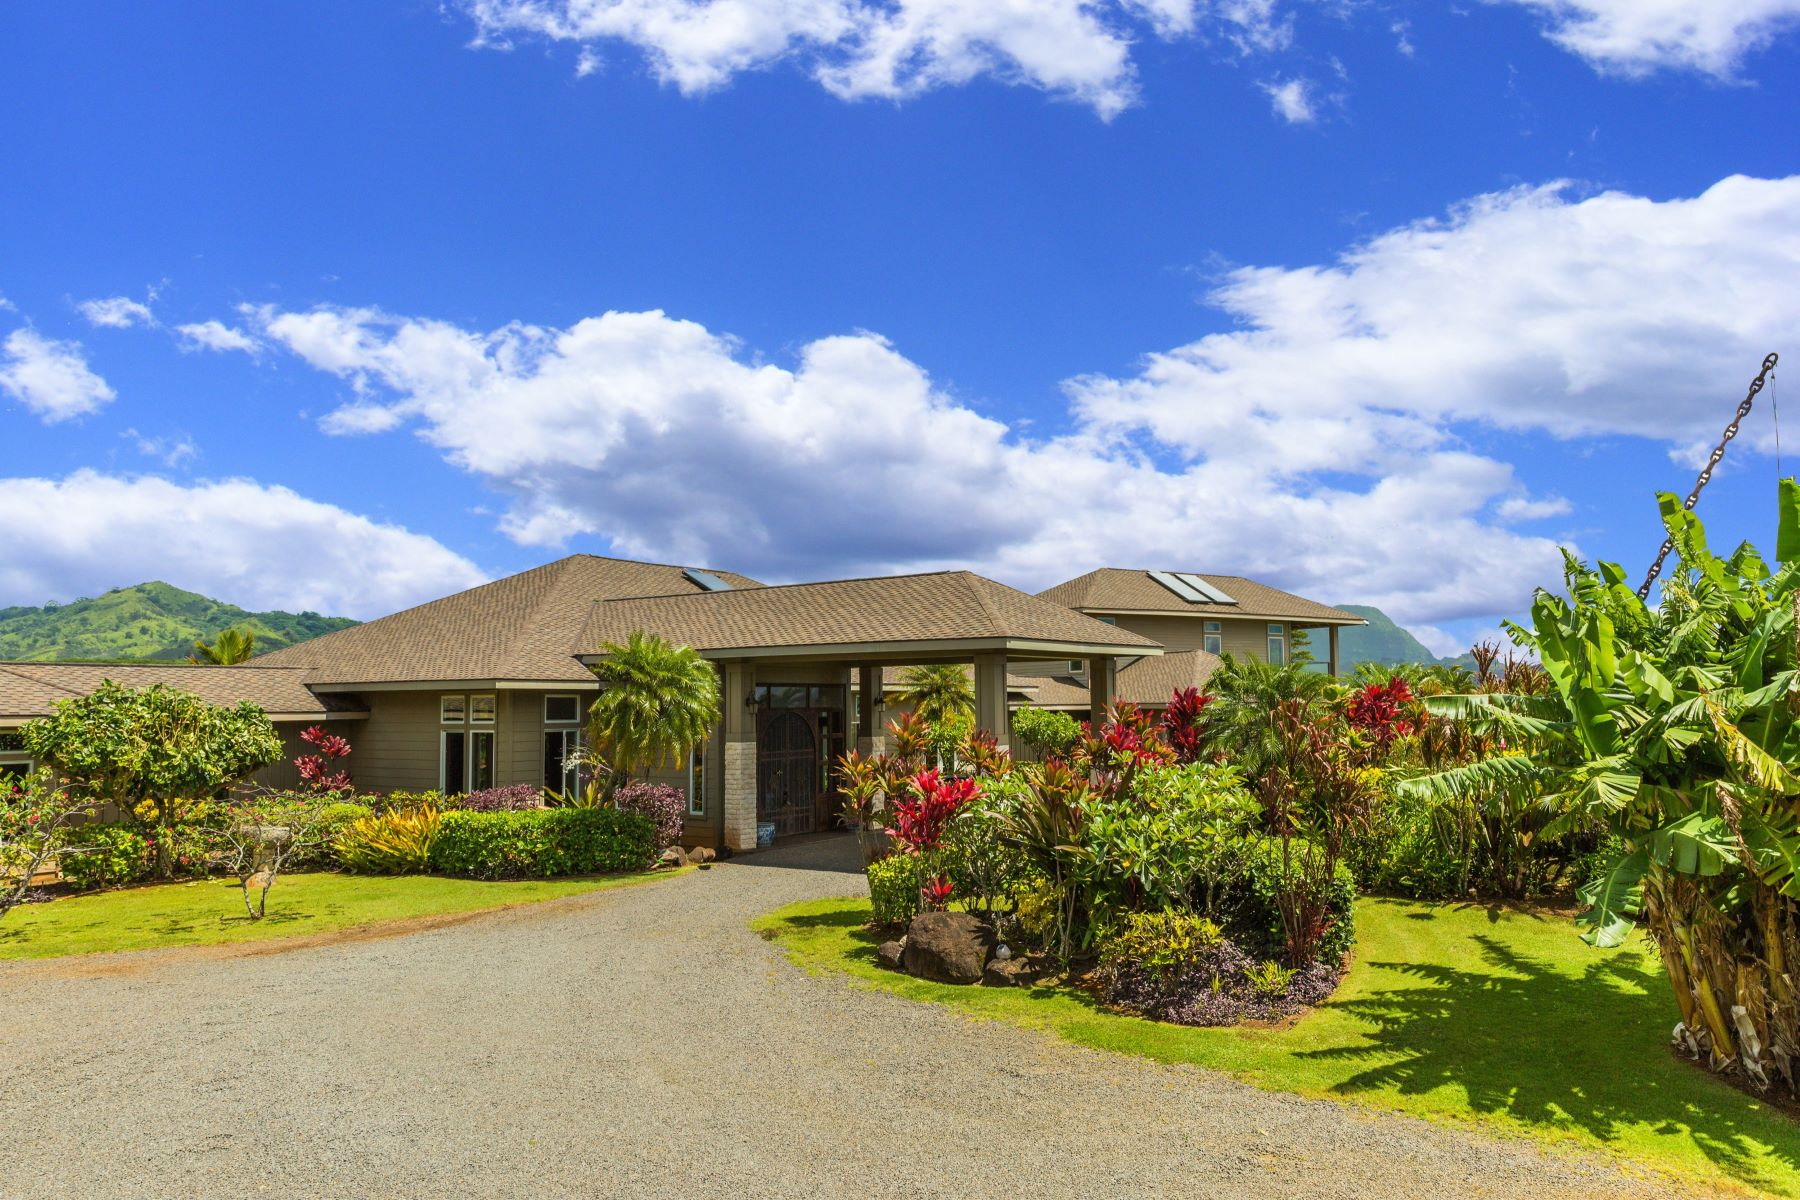 一戸建て のために 売買 アット Stunning Private South Shore Ranch Estate in Omao, Kauai 4825-P Koloa Road #2A, Koloa, ハワイ, 96756 アメリカ合衆国